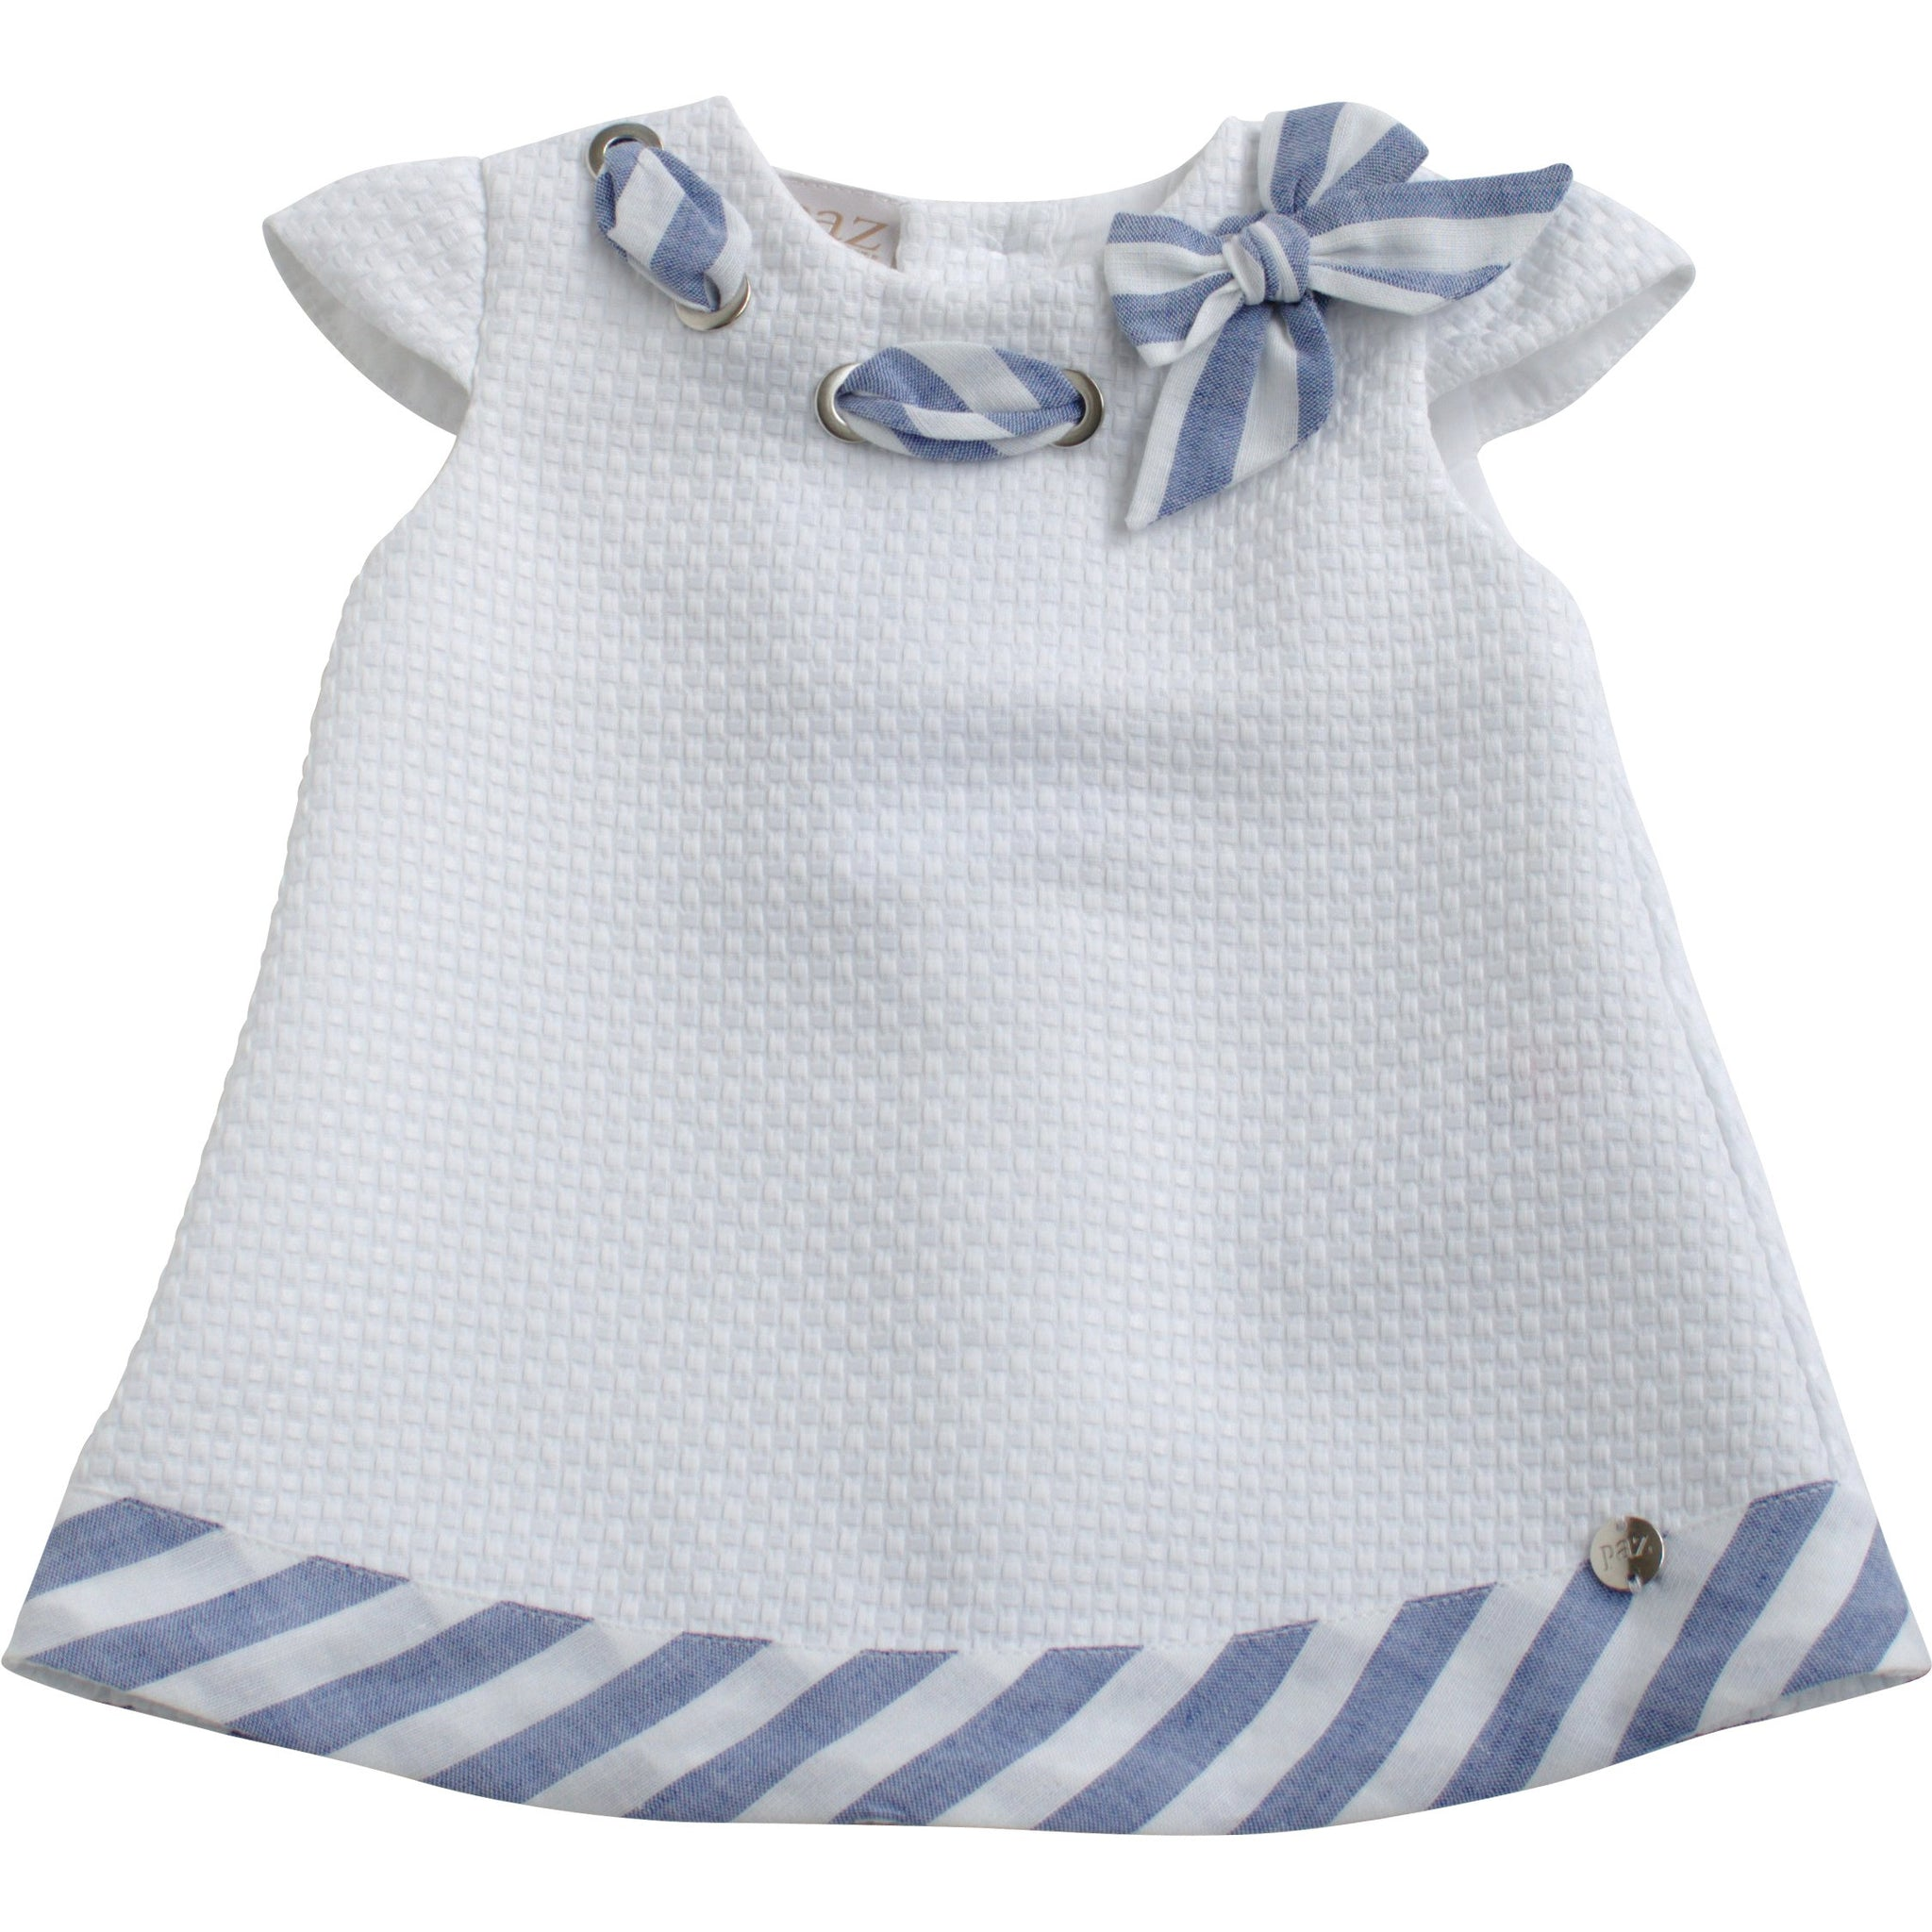 Baby Boutique Designer Baby Clothes online in Australia Stork and